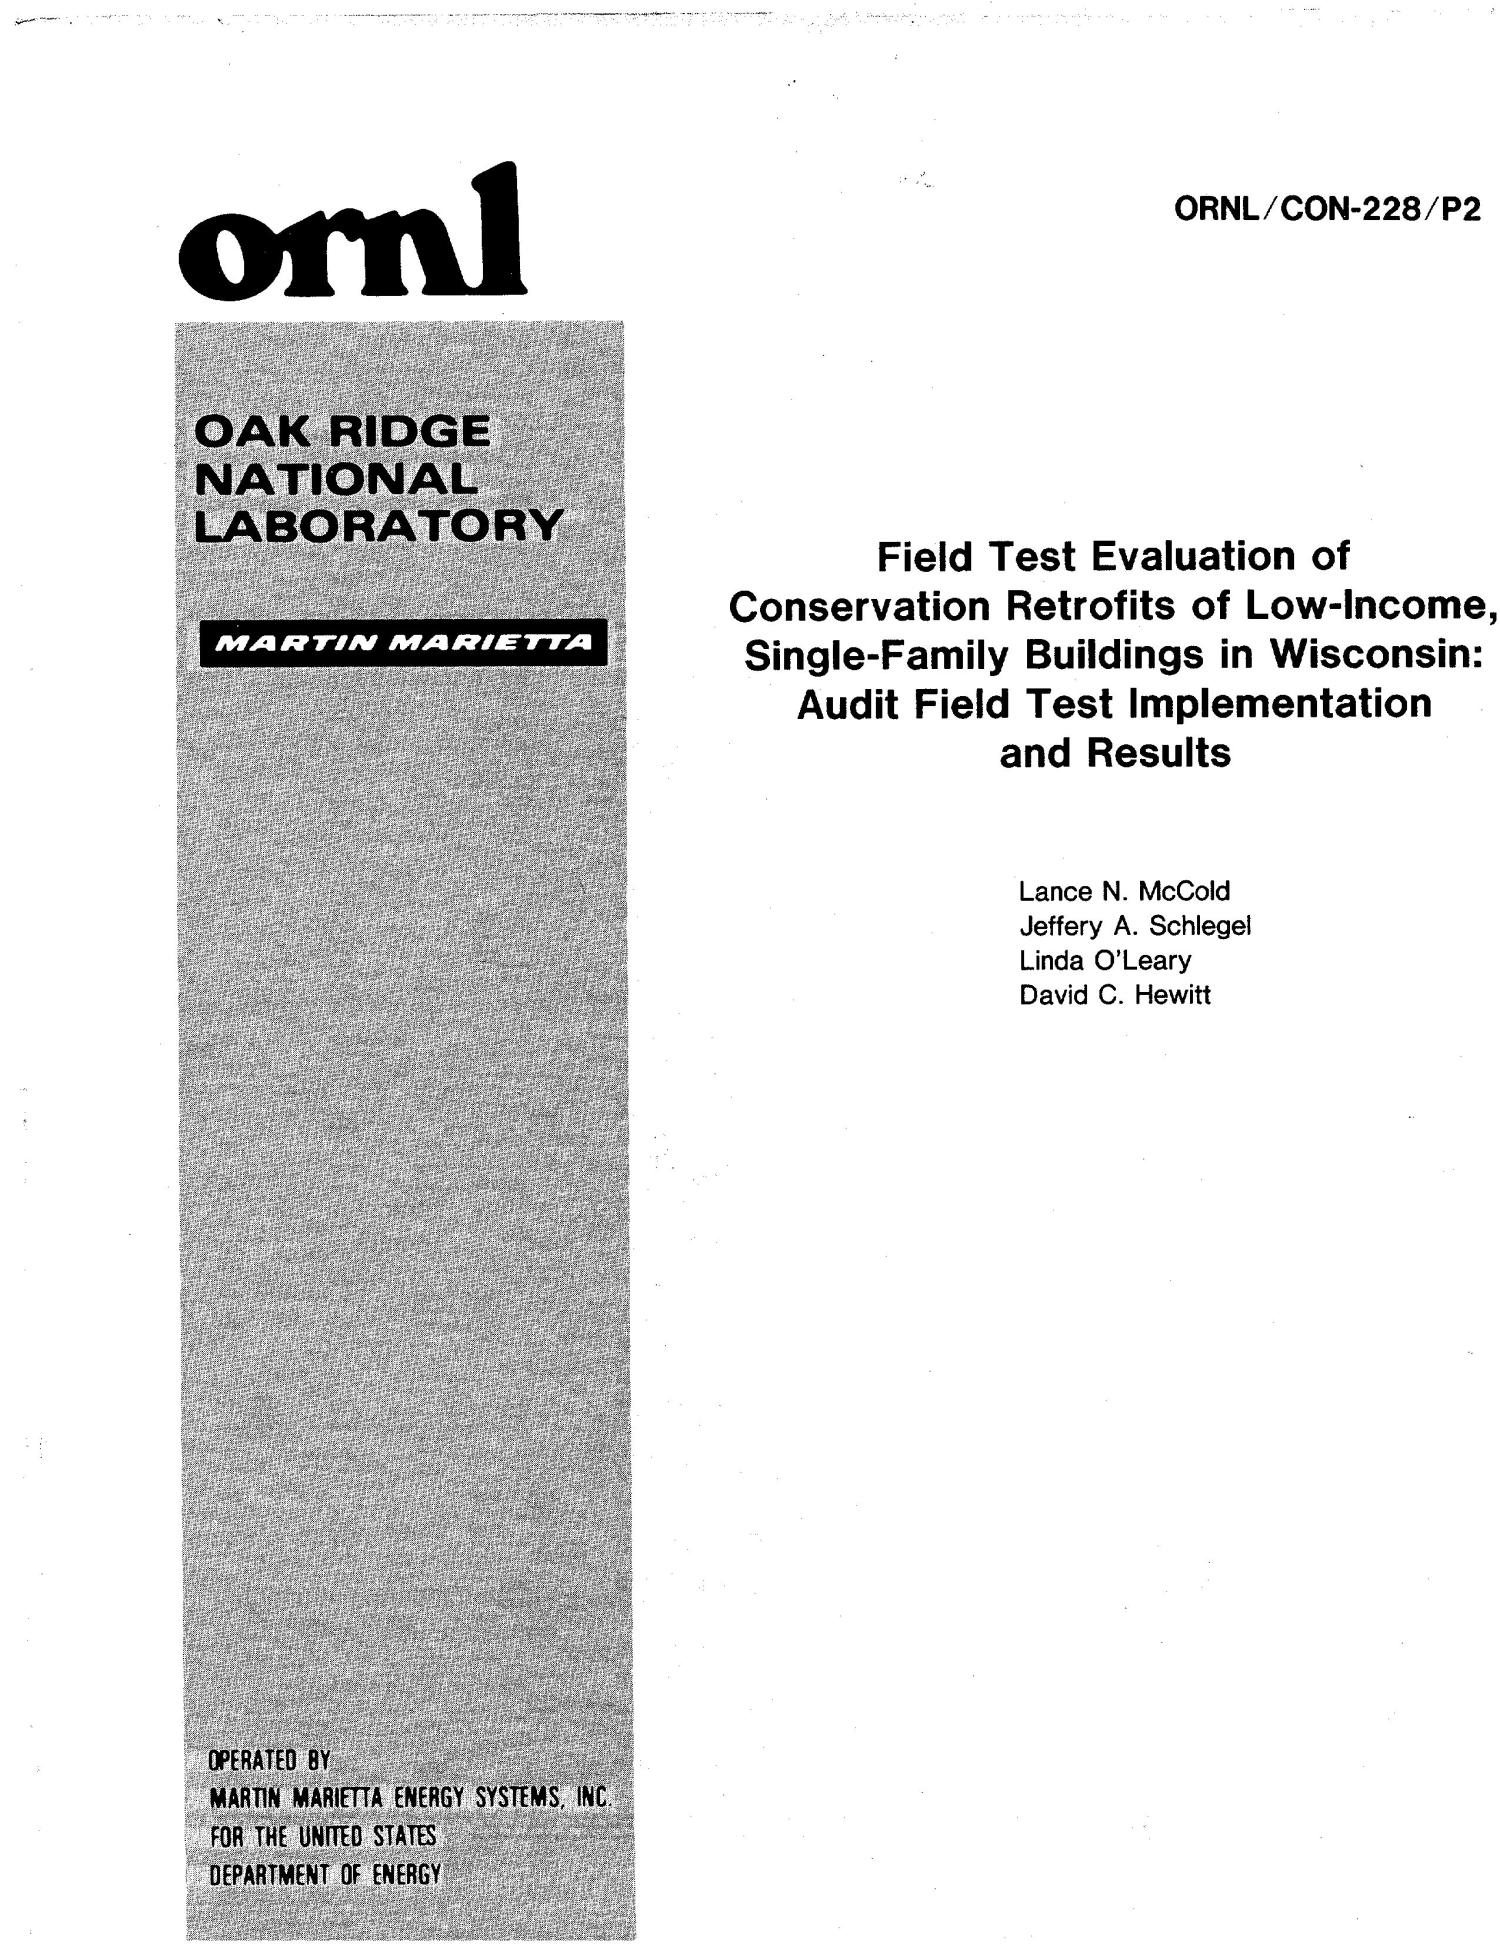 Field Test Evaluation of Conservation Retrofits of Low-Income, Single-Family Buildings in Wisconsin: Audit Field Test Implementation and Results                                                                                                      [Sequence #]: 1 of 84